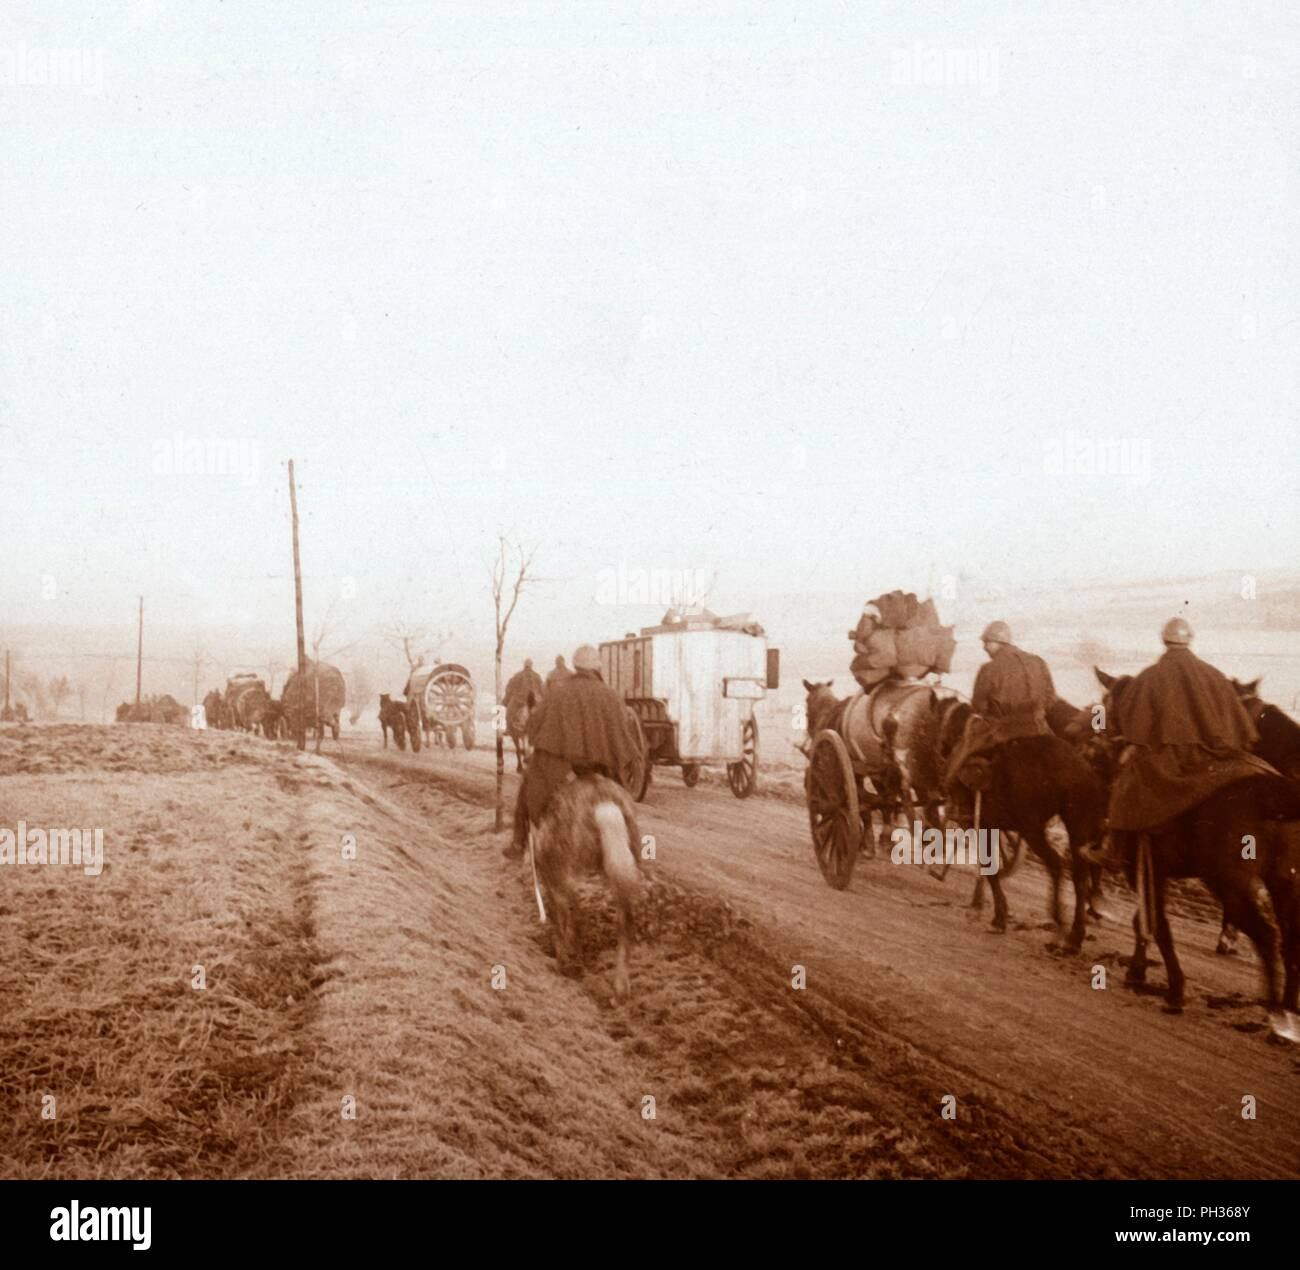 Convoy, Genicourt, northern France, 1916. A French Army re-supply convoy makes its way along the main road through the small Lorraine township of Genicourt-Sur-Meuse, on it's way to the front line at Verdun in the winter of 1916. The convoy consists of horse-drawn wagons bringing a variety of goods to the beleaguered French garrisons at the Verdun fortresses. A squadron of Chasseurs-au-Cheval (Light Cavalry) act as a cavalry screen for the convoy. Photograph from a series of glass plate stereoview images depicting scenes from World War I (1914-1918). - Stock Image